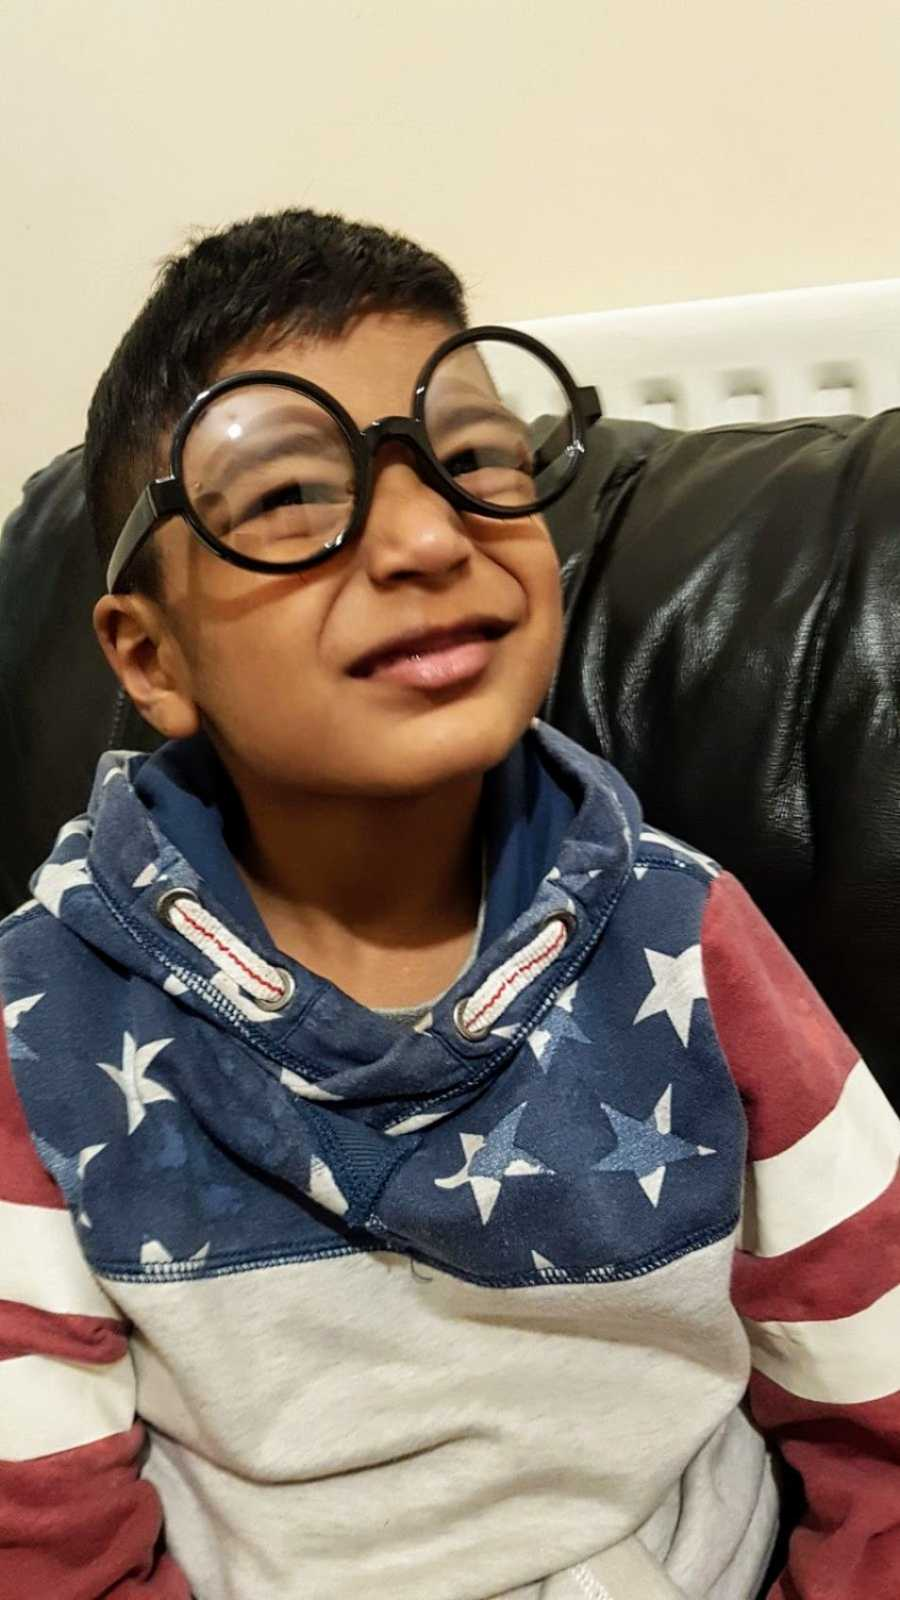 A boy with nonverbal autism wearing large glasses